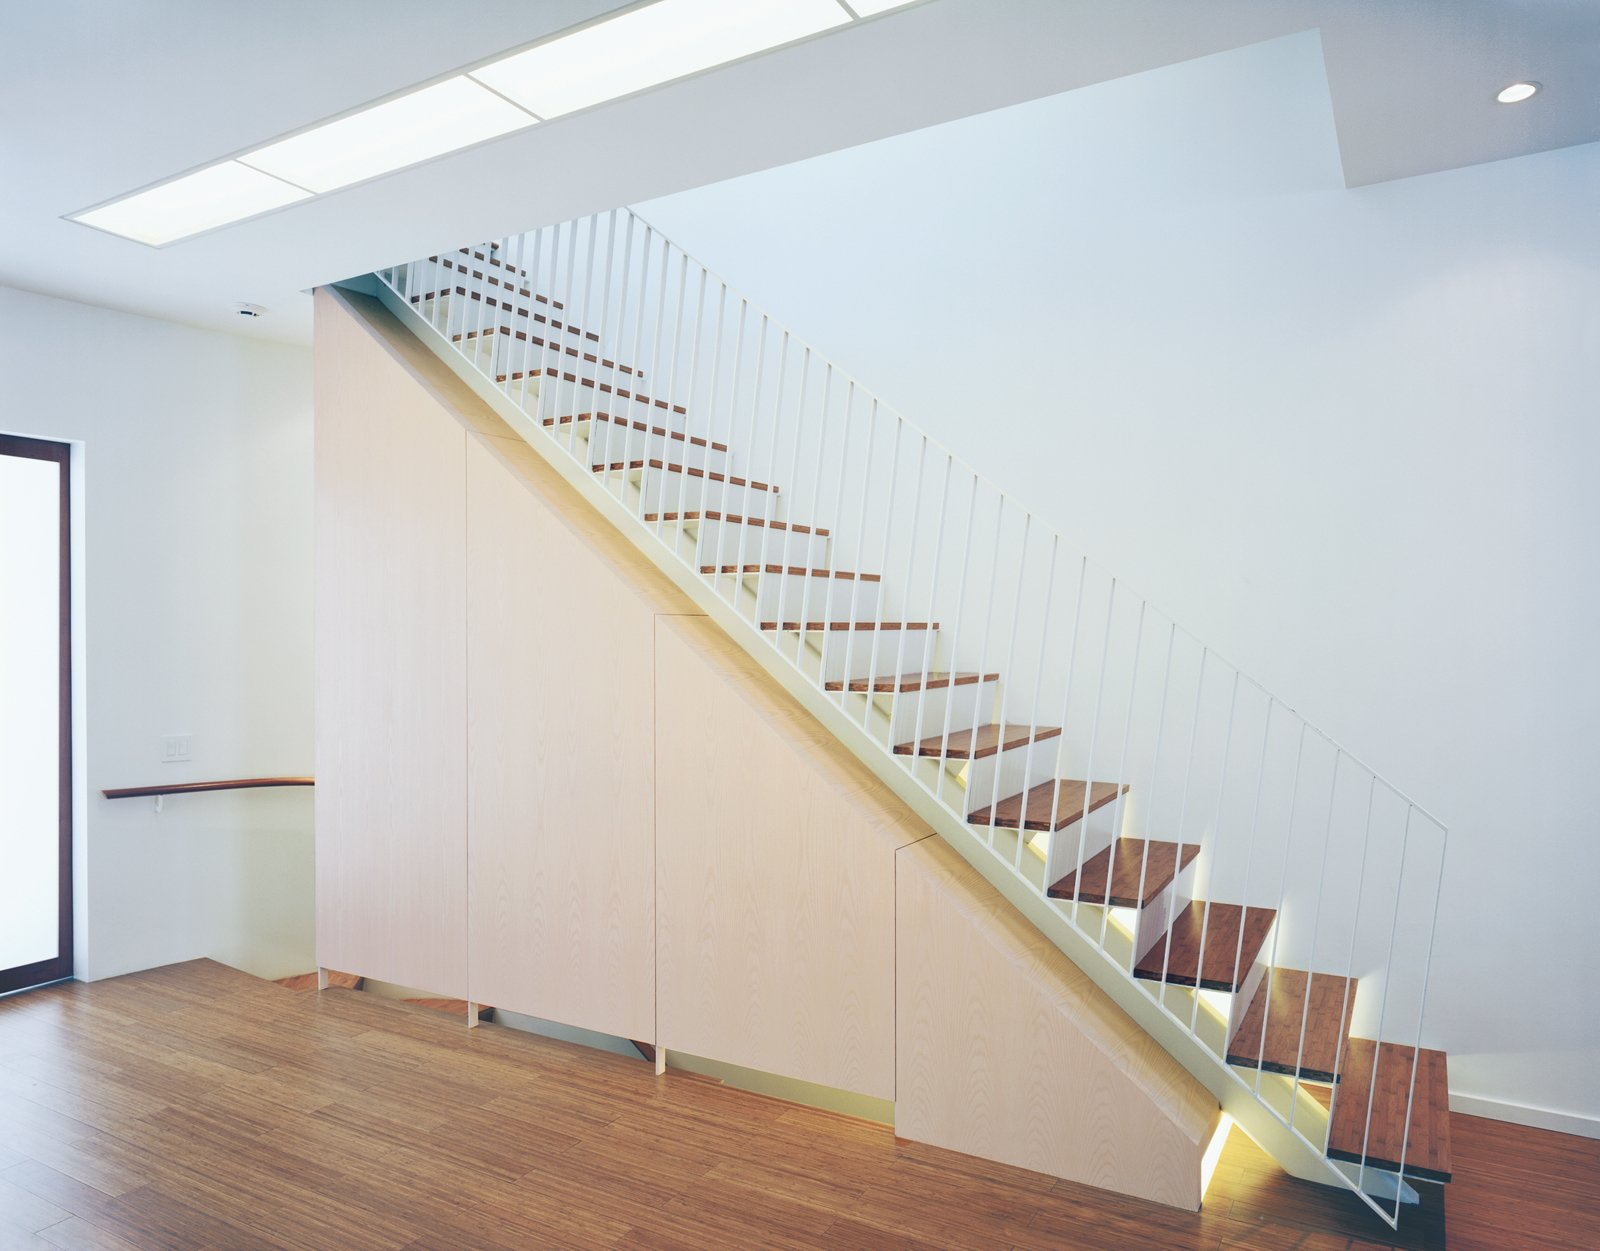 Staircase, Metal Railing, and Wood Tread Briggs and Knowles's elegant staircase draws upon the language of the oculus; the stairs are underlit with fluorescent lighting, which accents the line of the steps, giving them an ethereal, almost weightless quality.  190+ Best Modern Staircase Ideas from Modern Rowhouse Renovation in New York